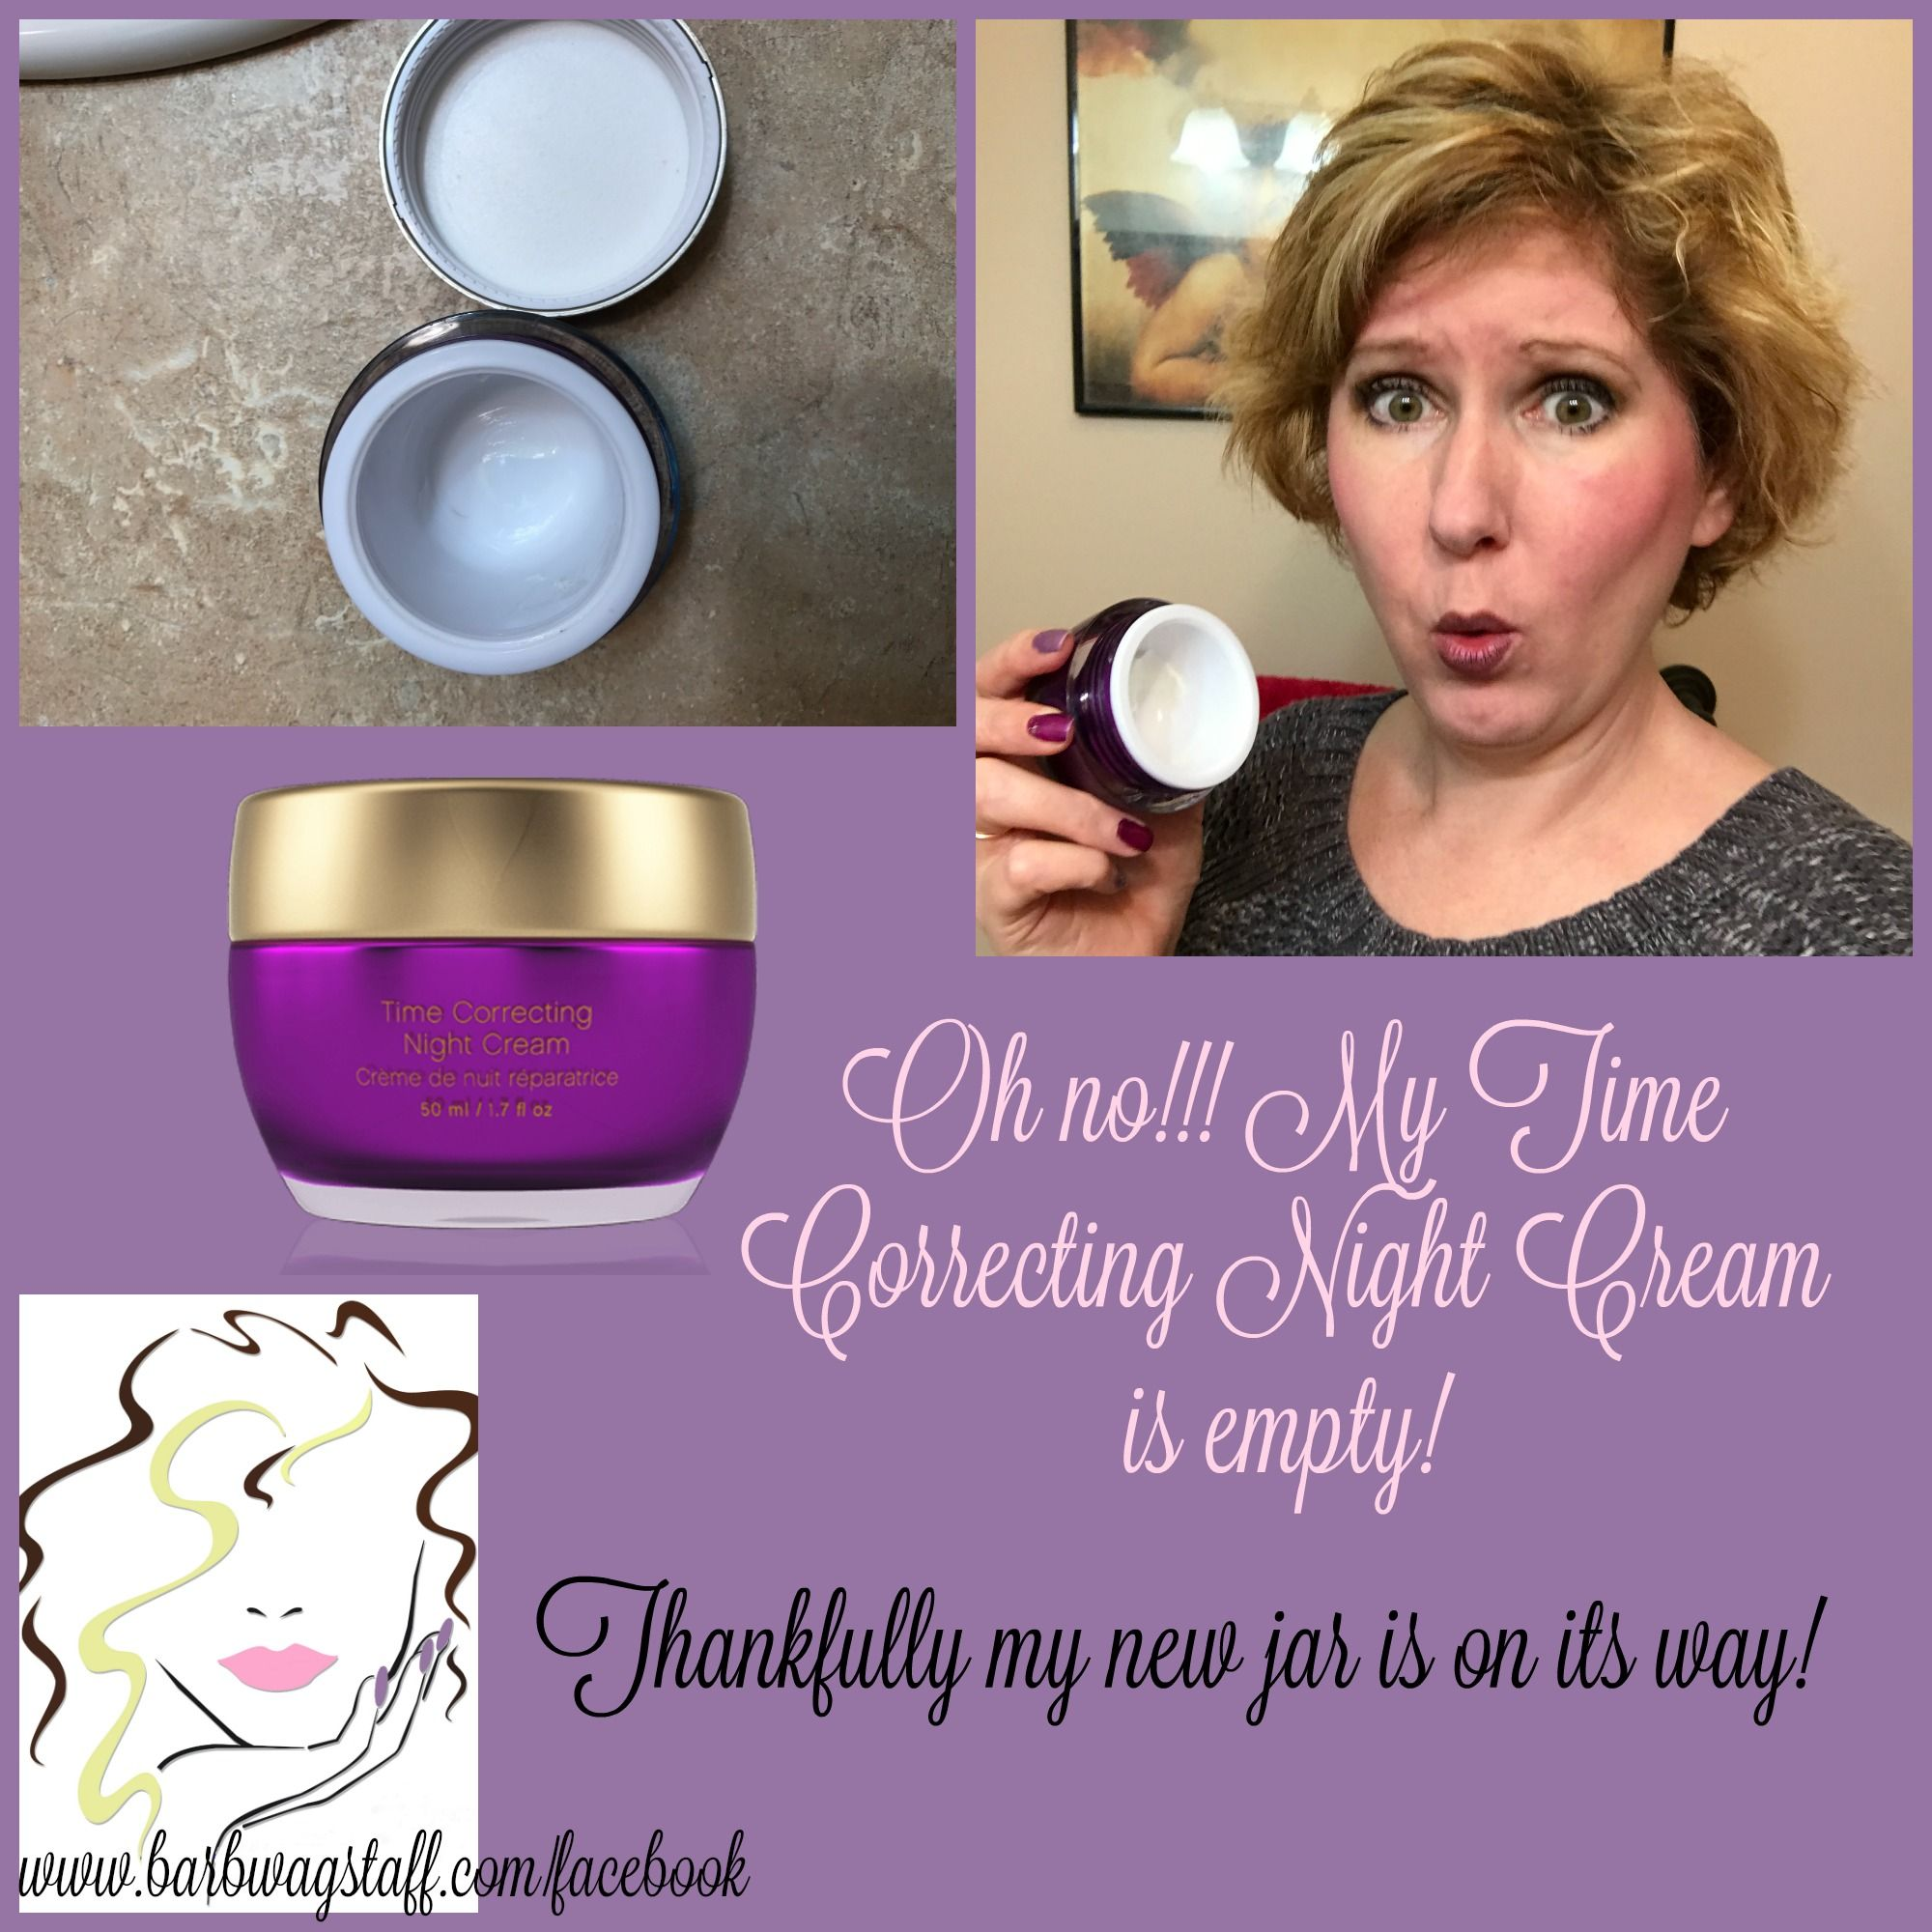 Younique night cream is a luxurious, heavenly cream for your face.  When you use this cream you can be confident that your face is getting the added moisture that it needs each night.  For more product reviews and information join me on Facebook at www.barbwagstaff.com/VIPs